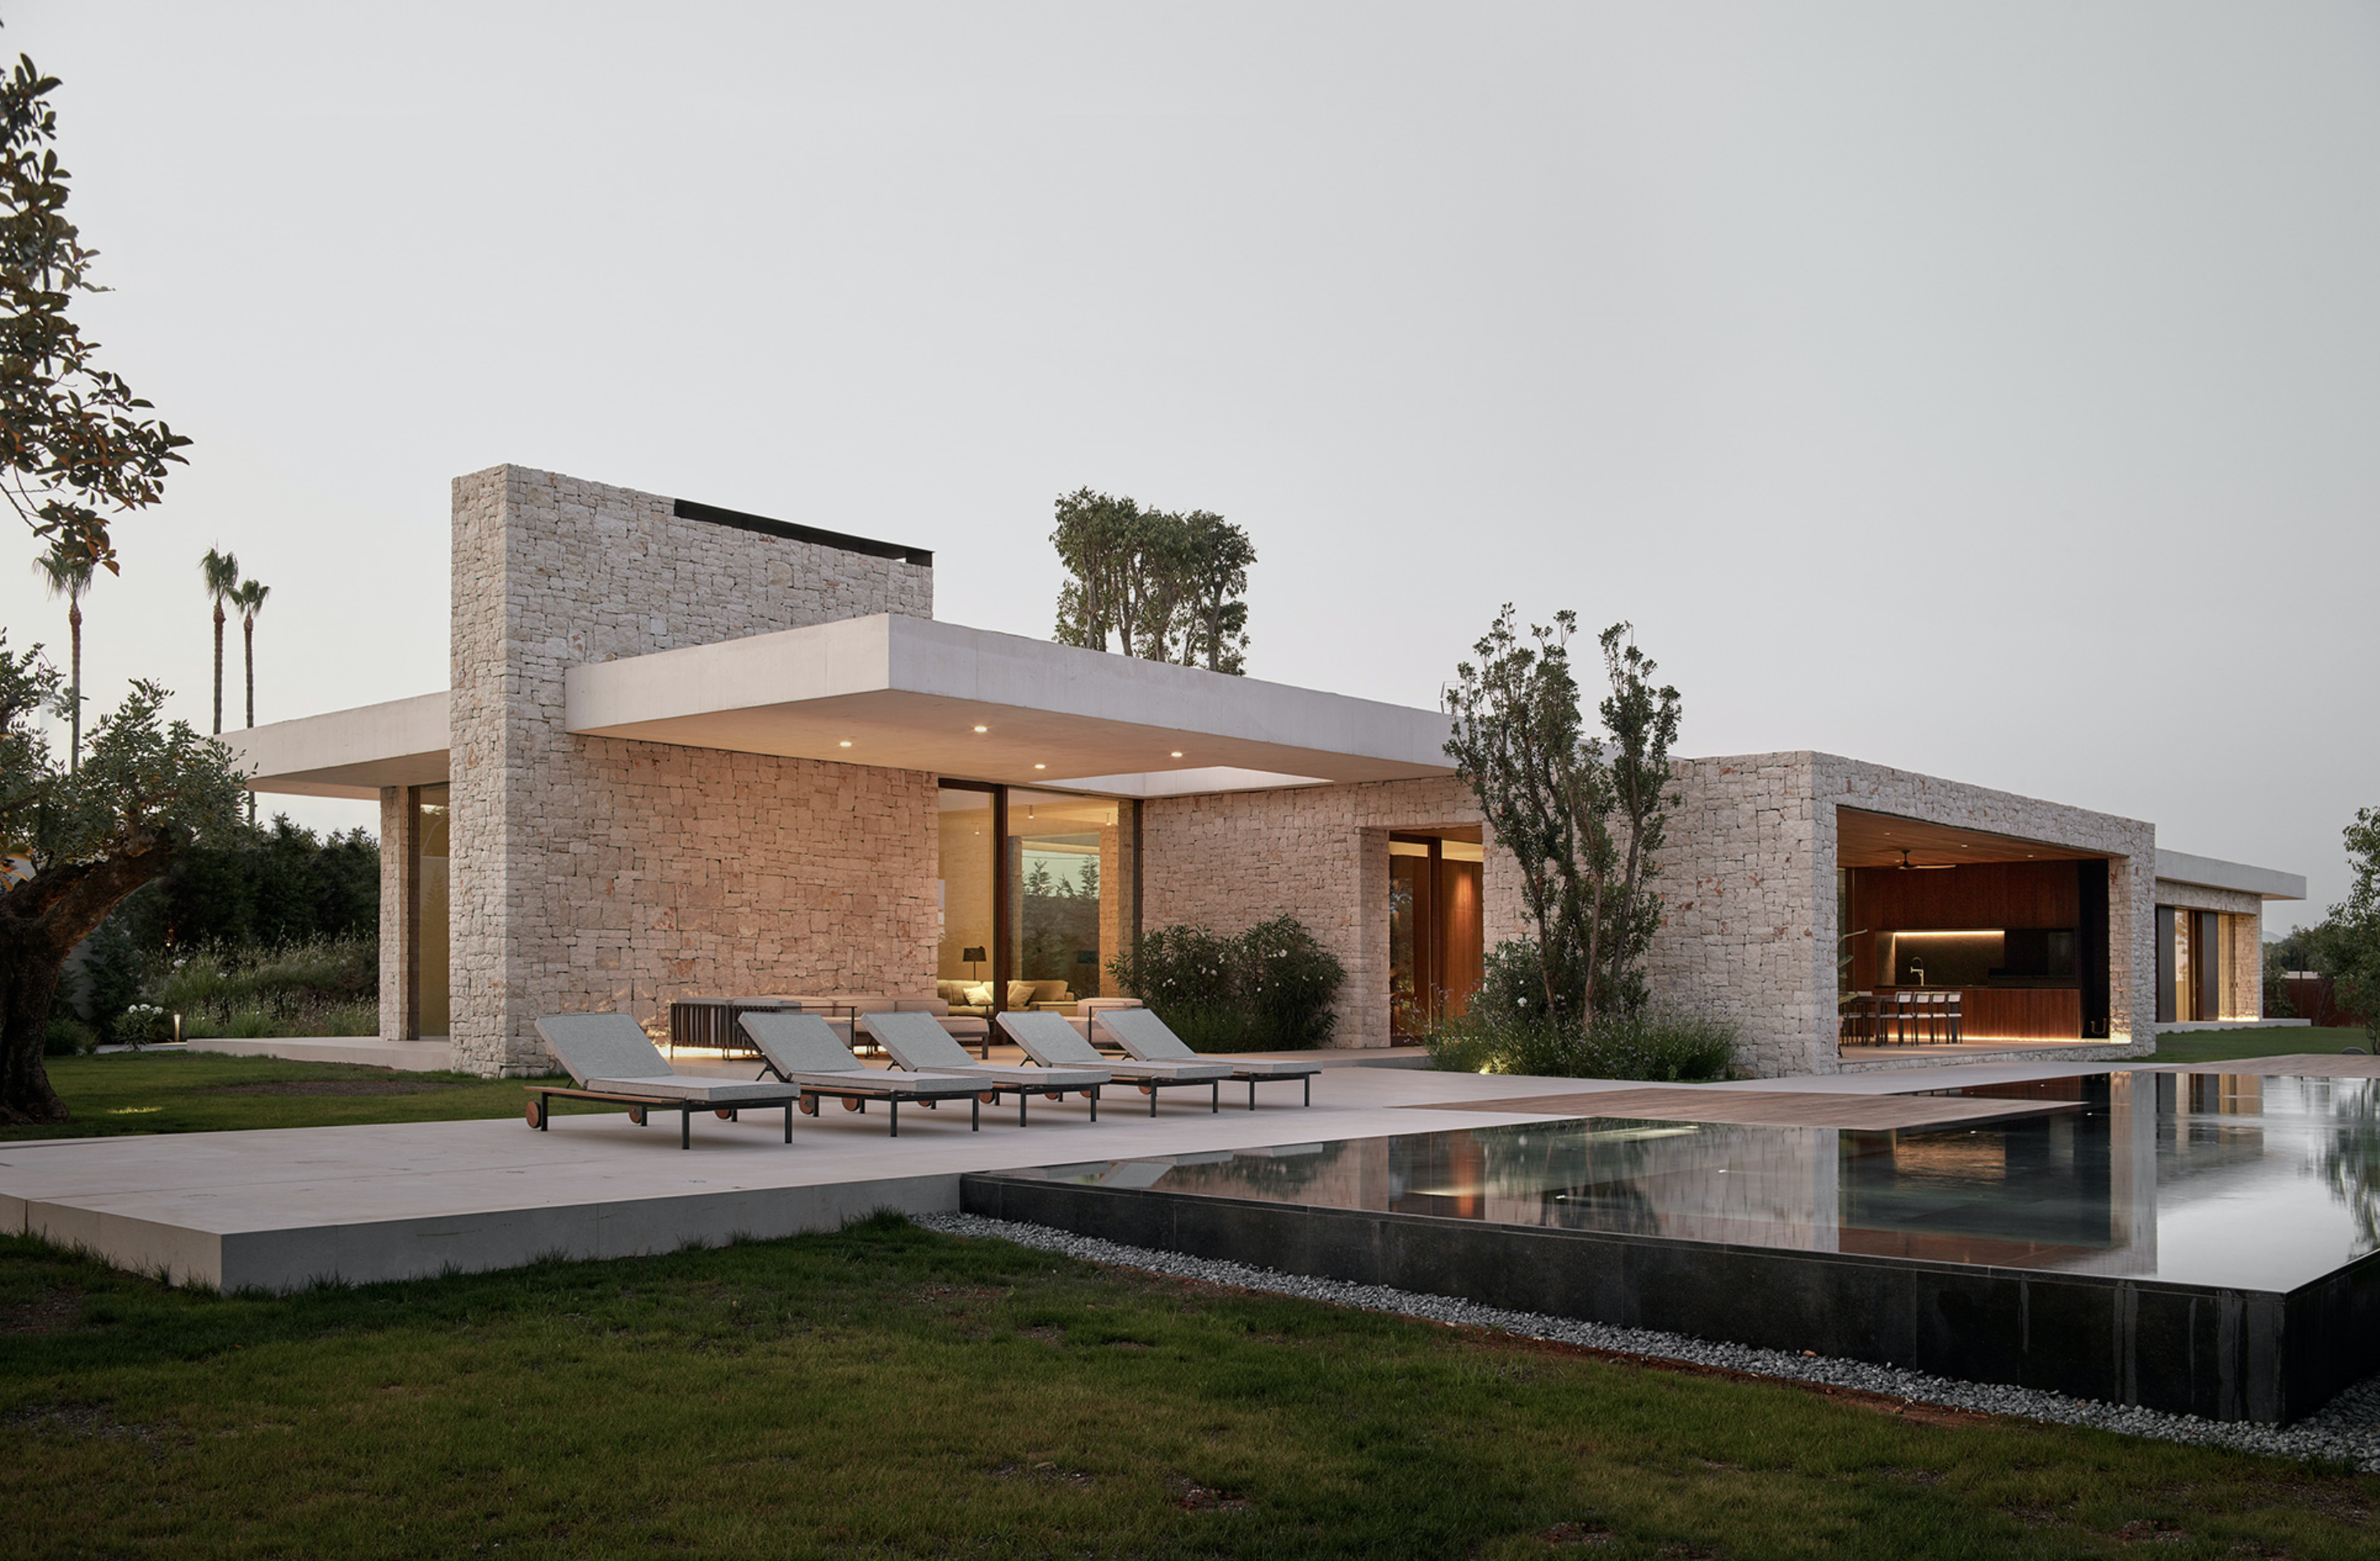 The house blends interior and exterior seamlessly